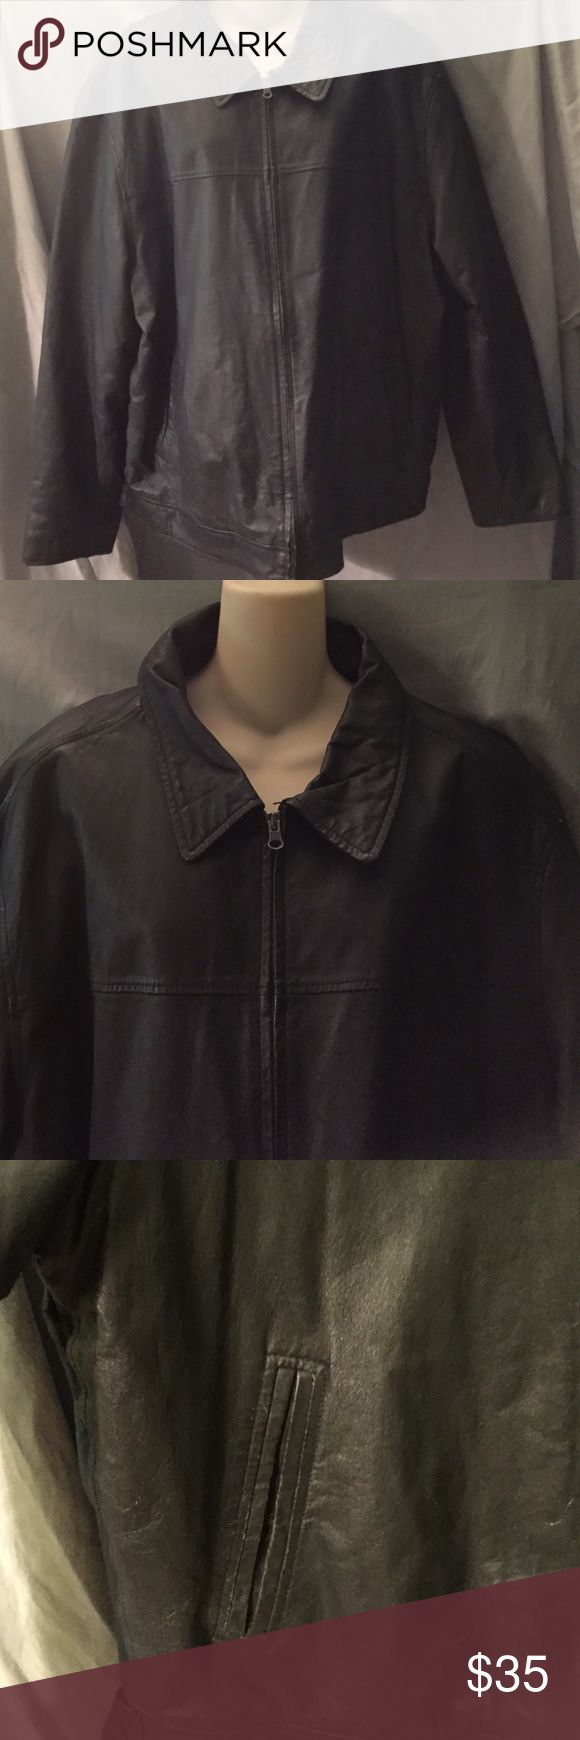 Men's faux leather jacket St. John's Bay black Faux-leather jacket. Front side pockets as well as Inside pocket. St. John's Bay Jackets & Coats